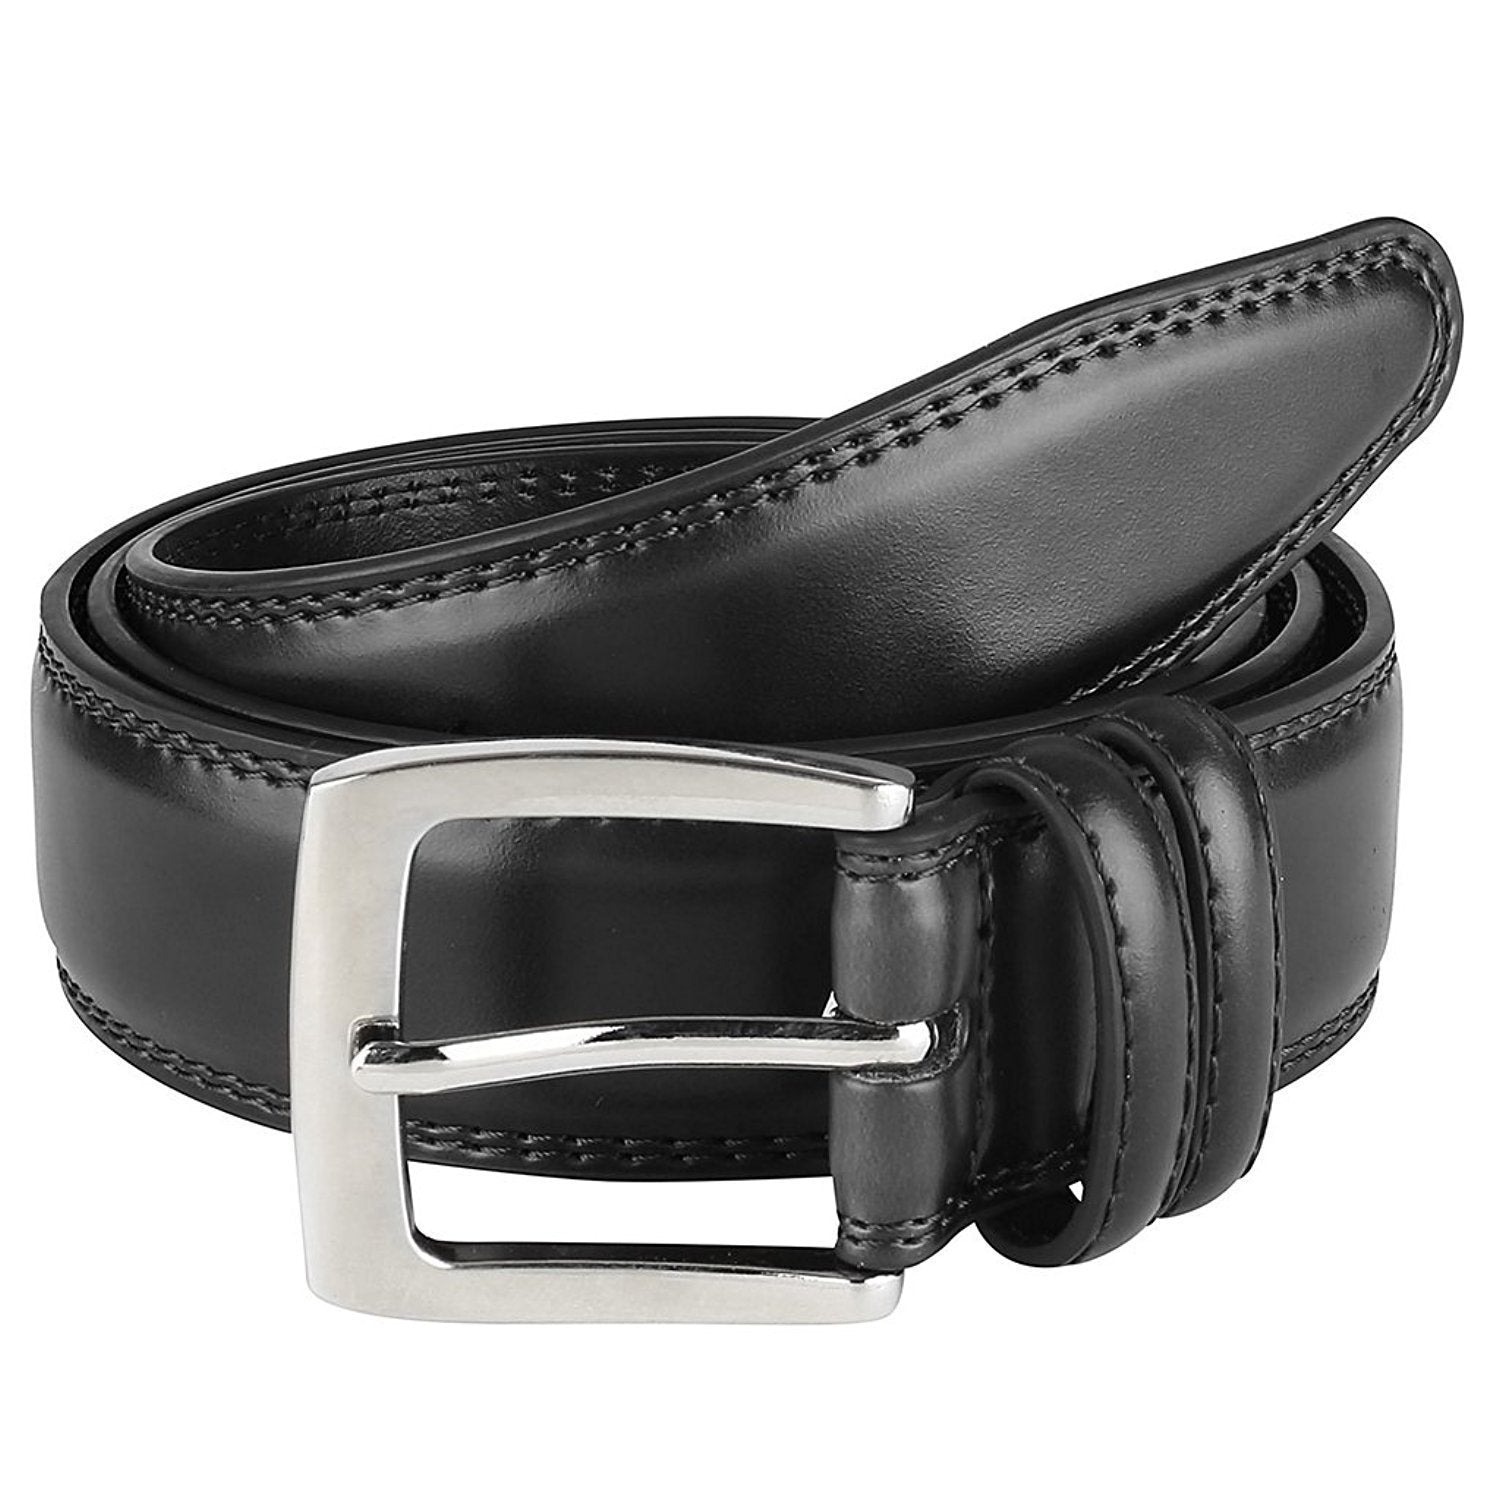 Belts for Men Mens Belt Buckle Genuine Leather Stitched Uniform Dress Belt Navy